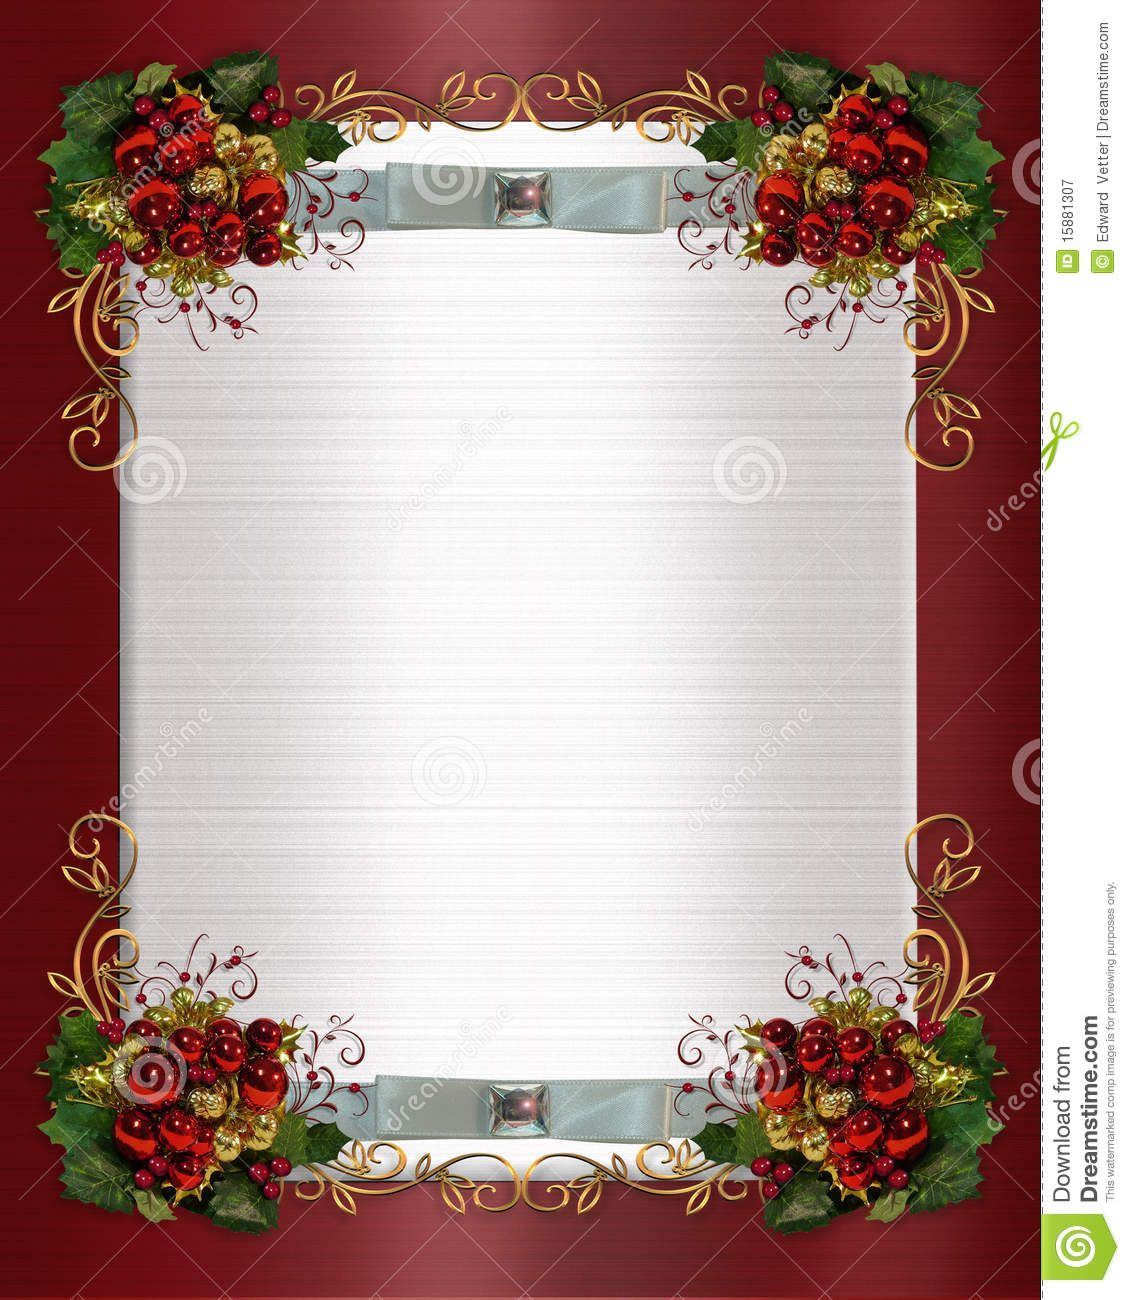 Christmas Or Winter Wedding Border Royalty Free Stock Photography ...